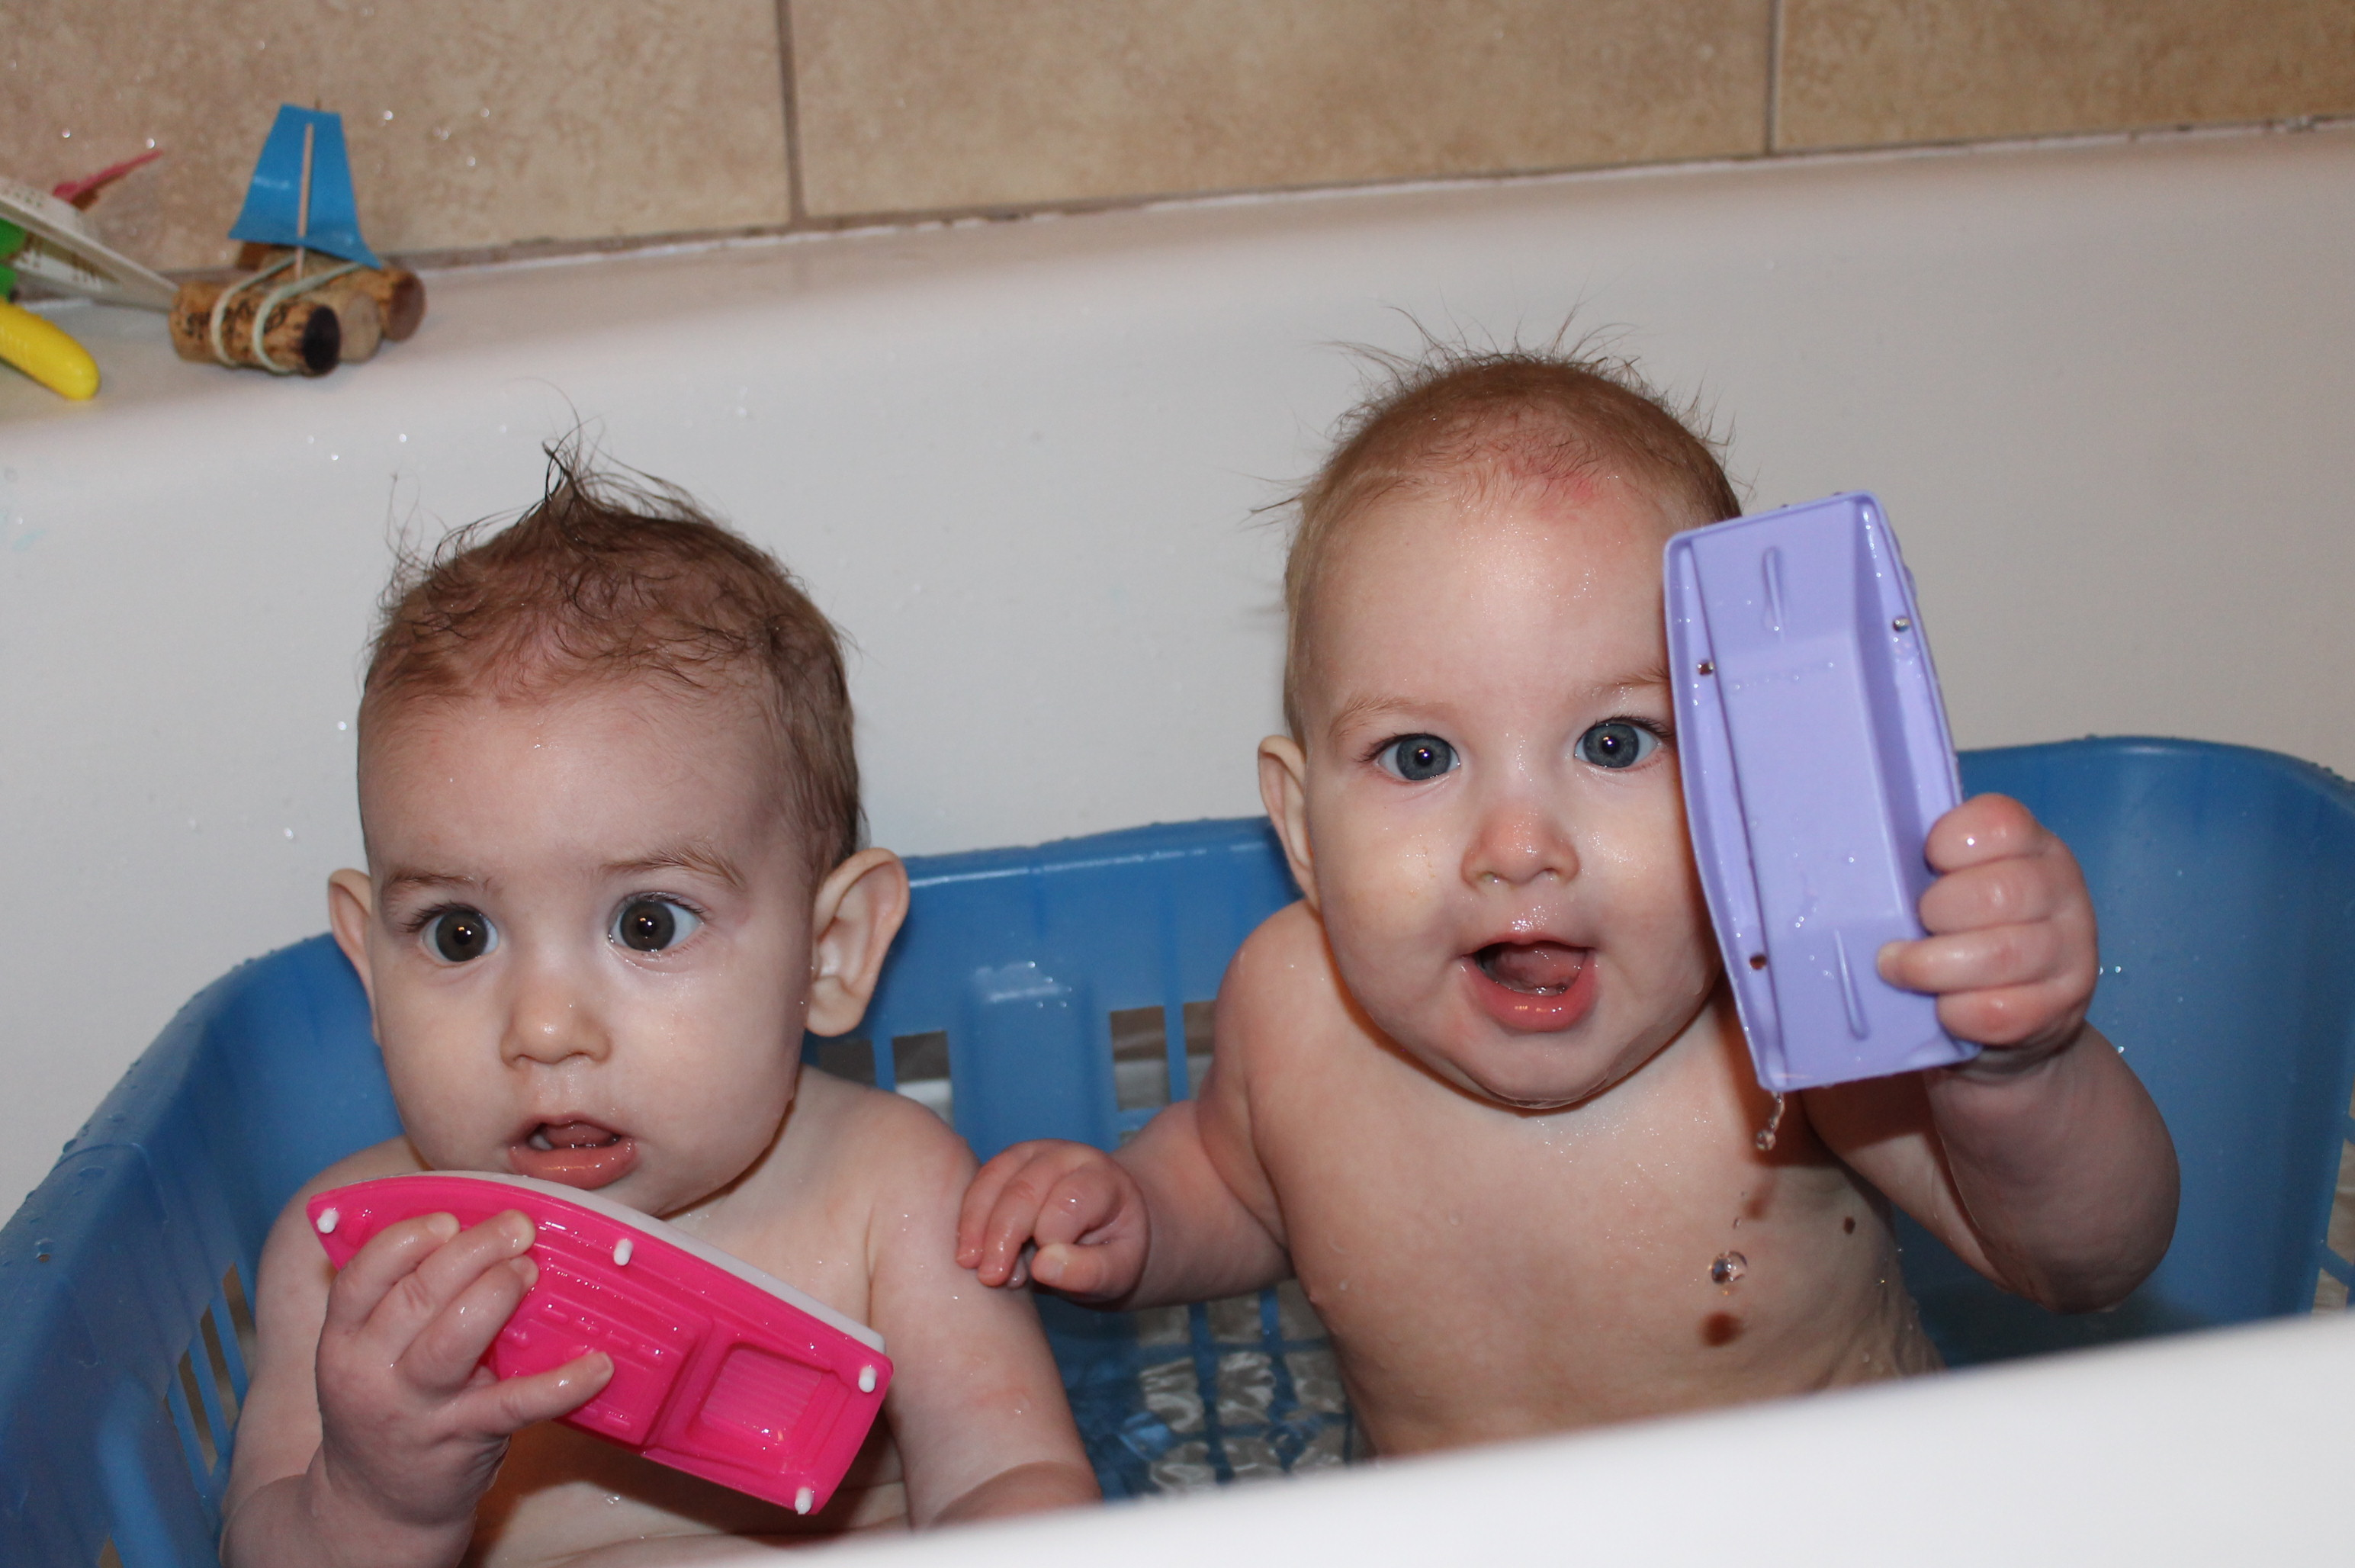 bathing 7mo old twins without help lifeplustwins. Black Bedroom Furniture Sets. Home Design Ideas